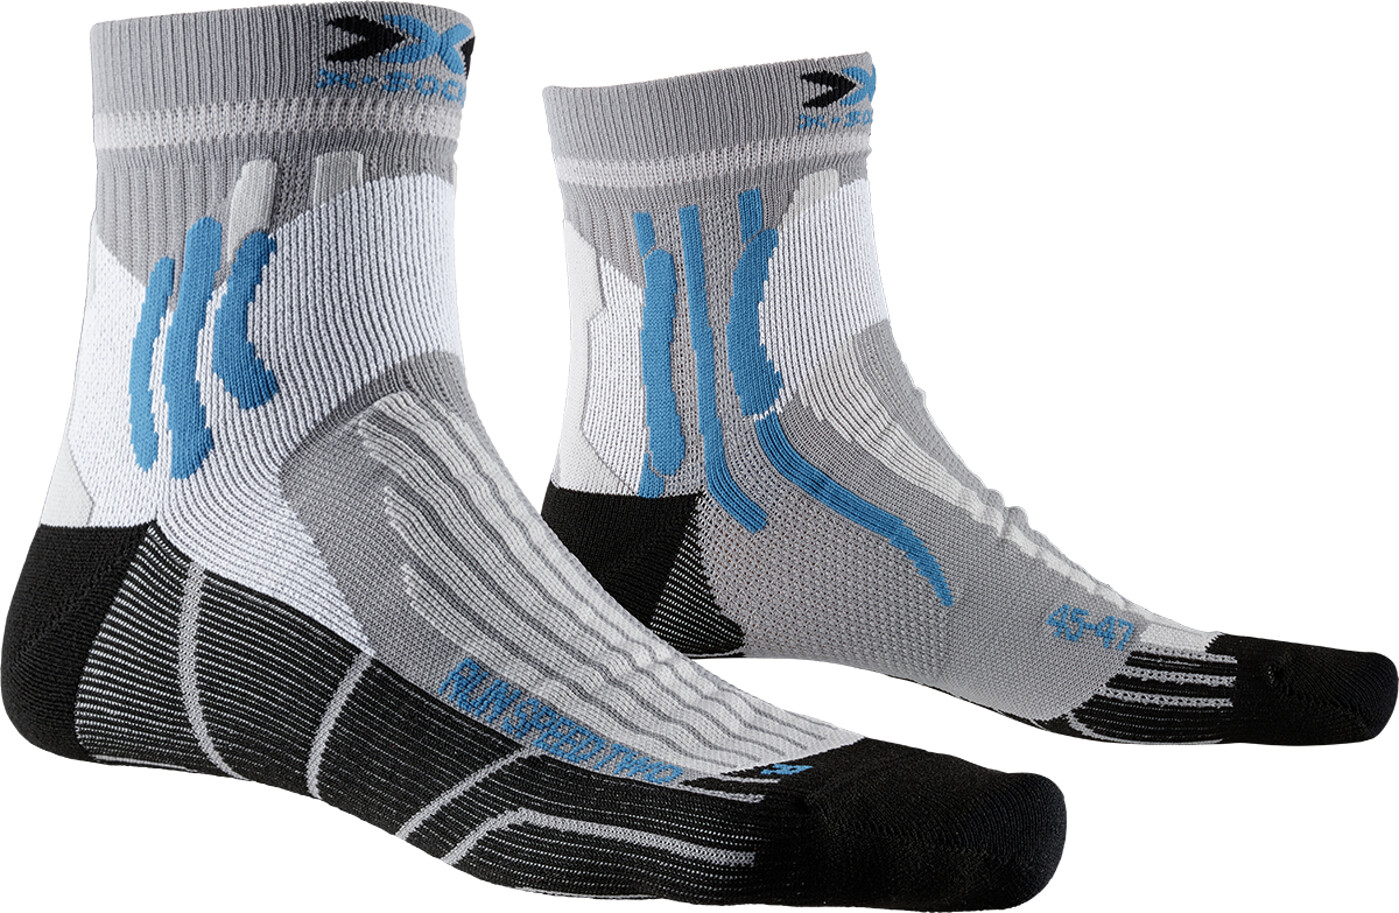 X-BIONIC X-SOCKS® RUN SPEED TWO - Herren